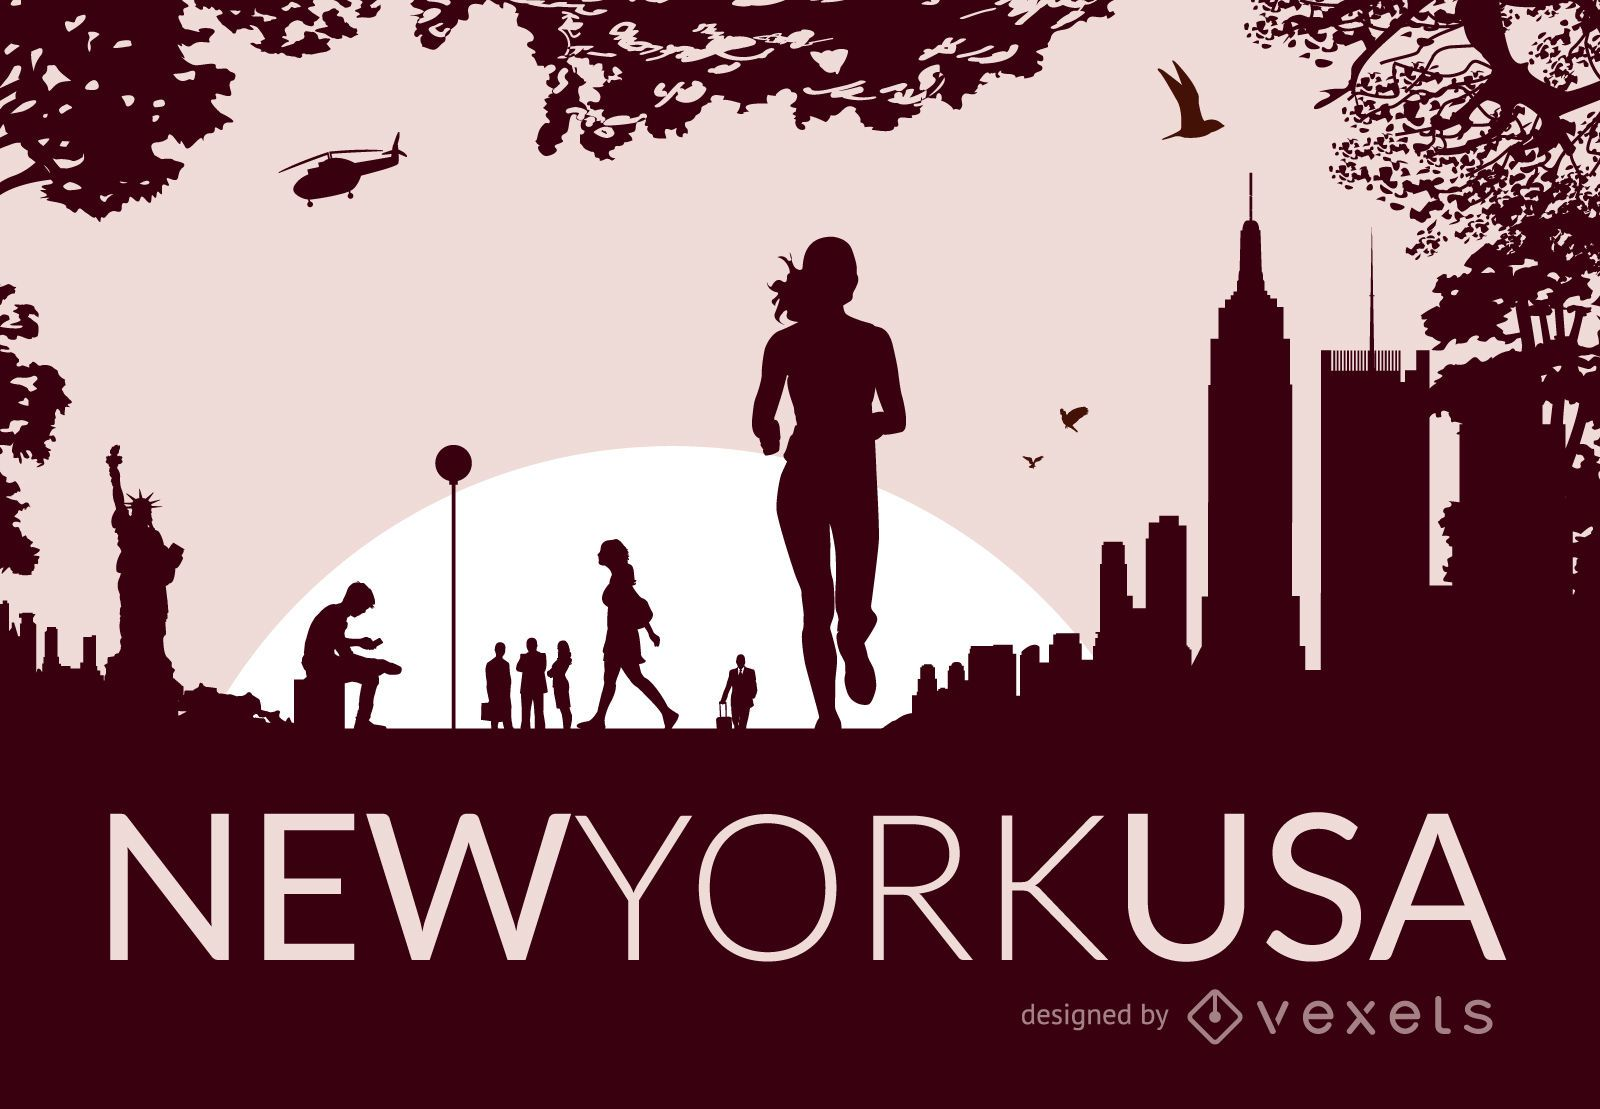 New York City skyline with silhouettes